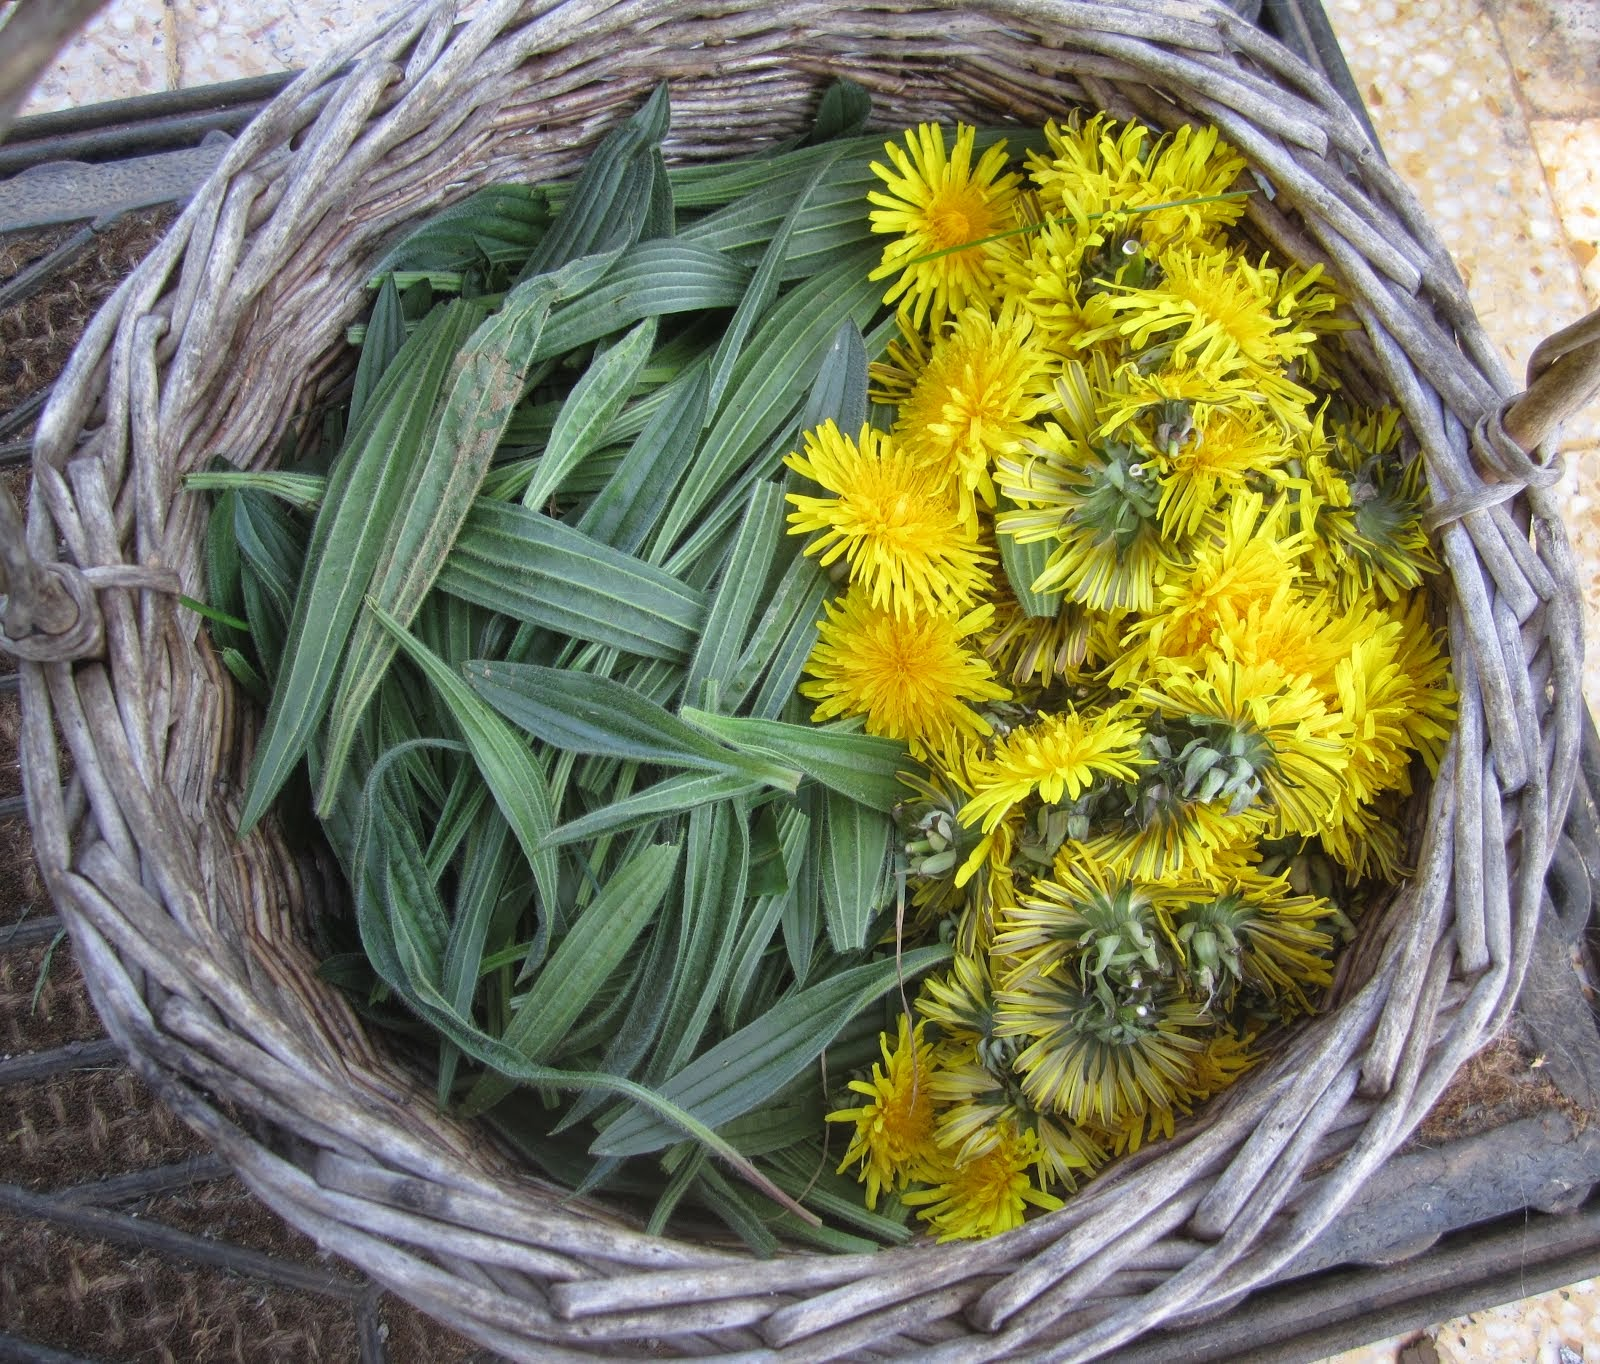 Plantain and dandelion flowers